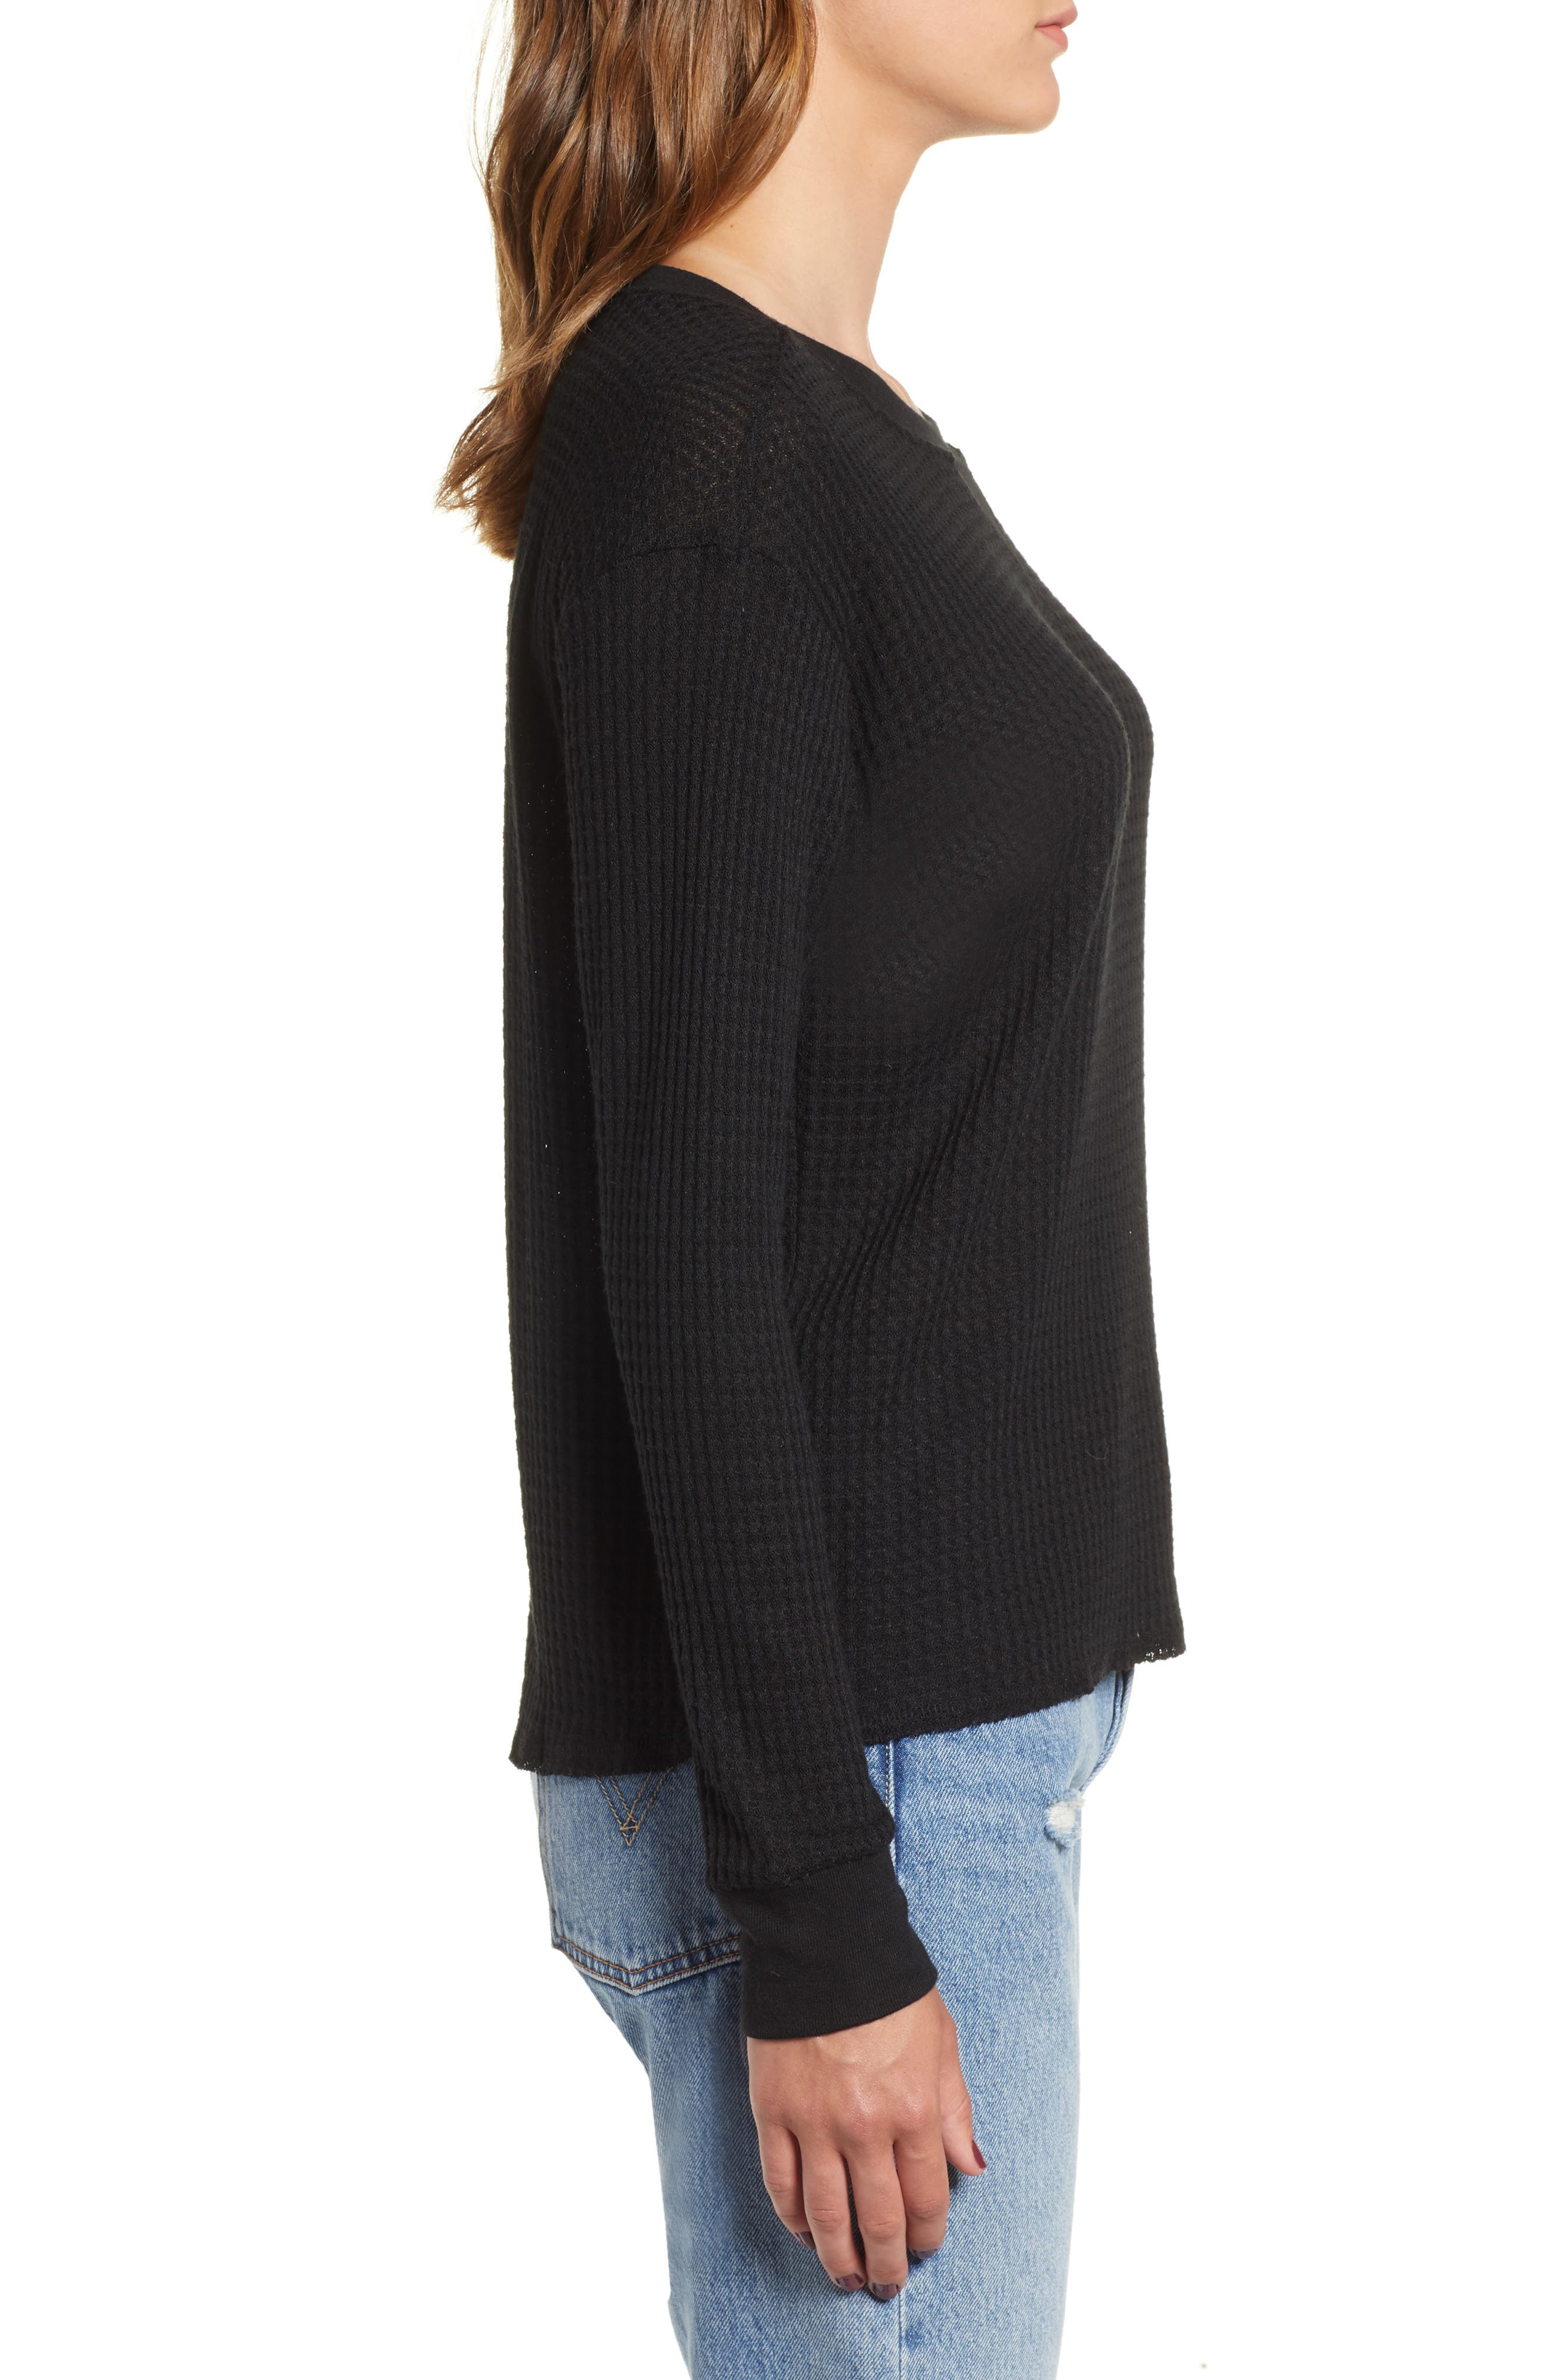 Cited Waffle Knit Pullover Top,                             Alternate thumbnail 3, color,                             001